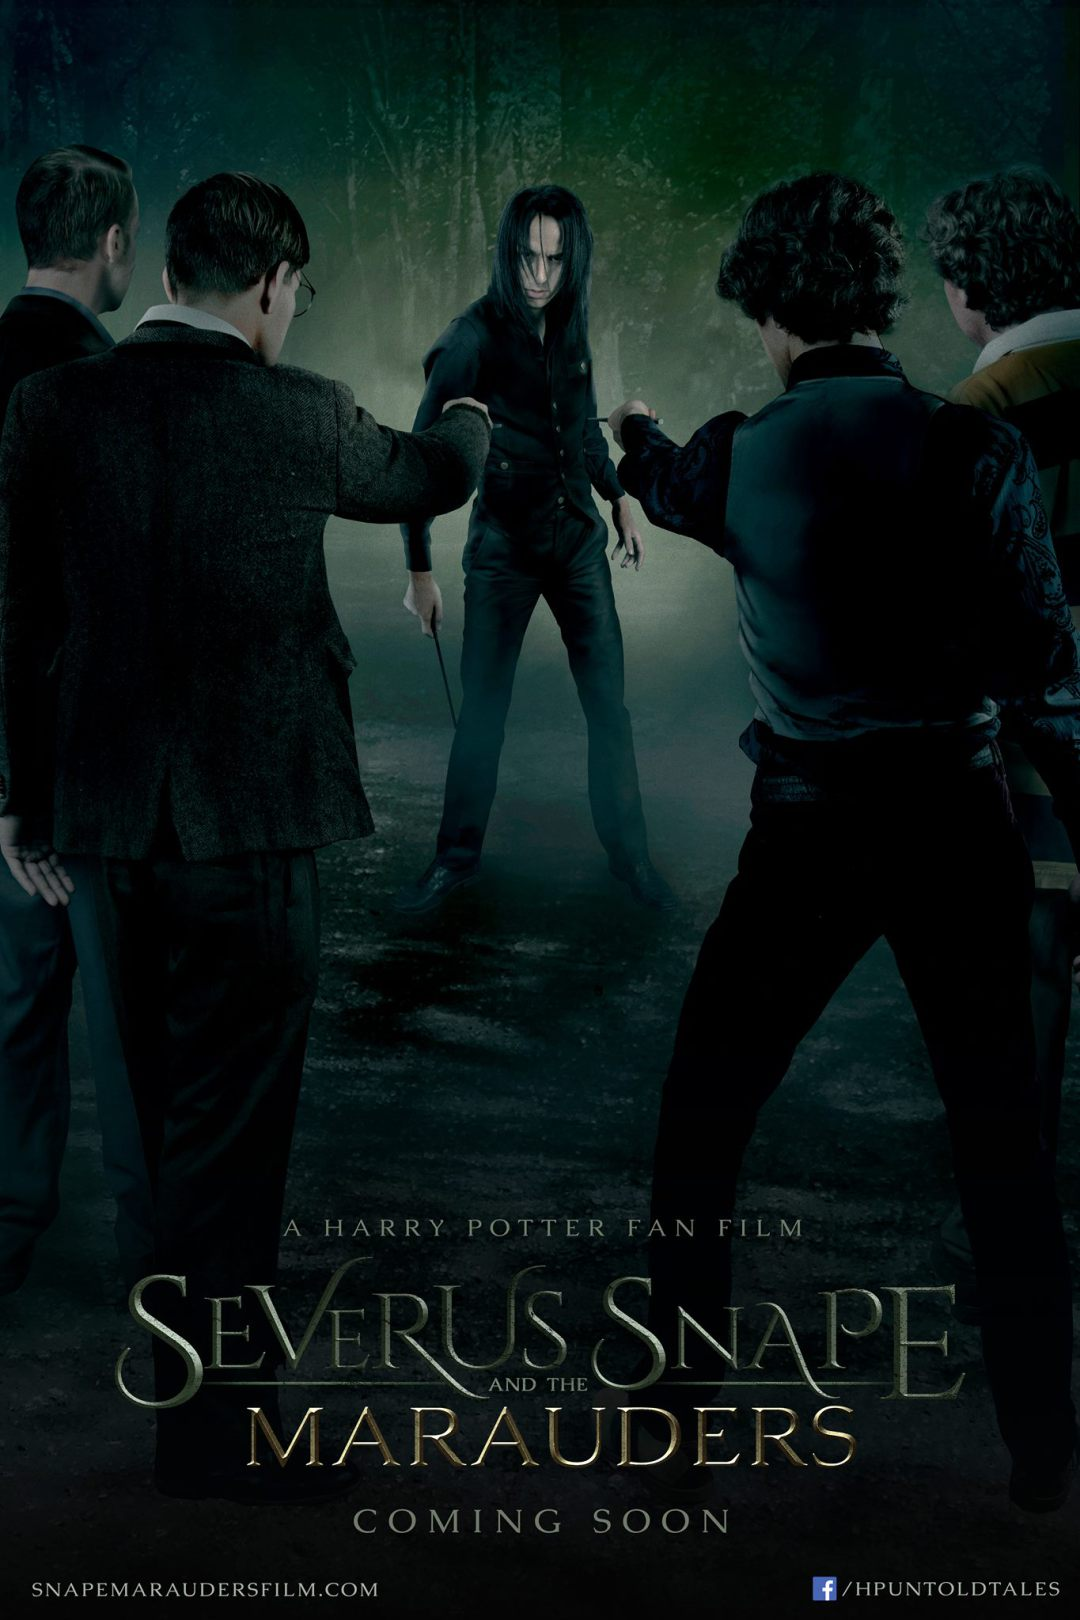 Severus_Snape_and_the_Marauders_poster